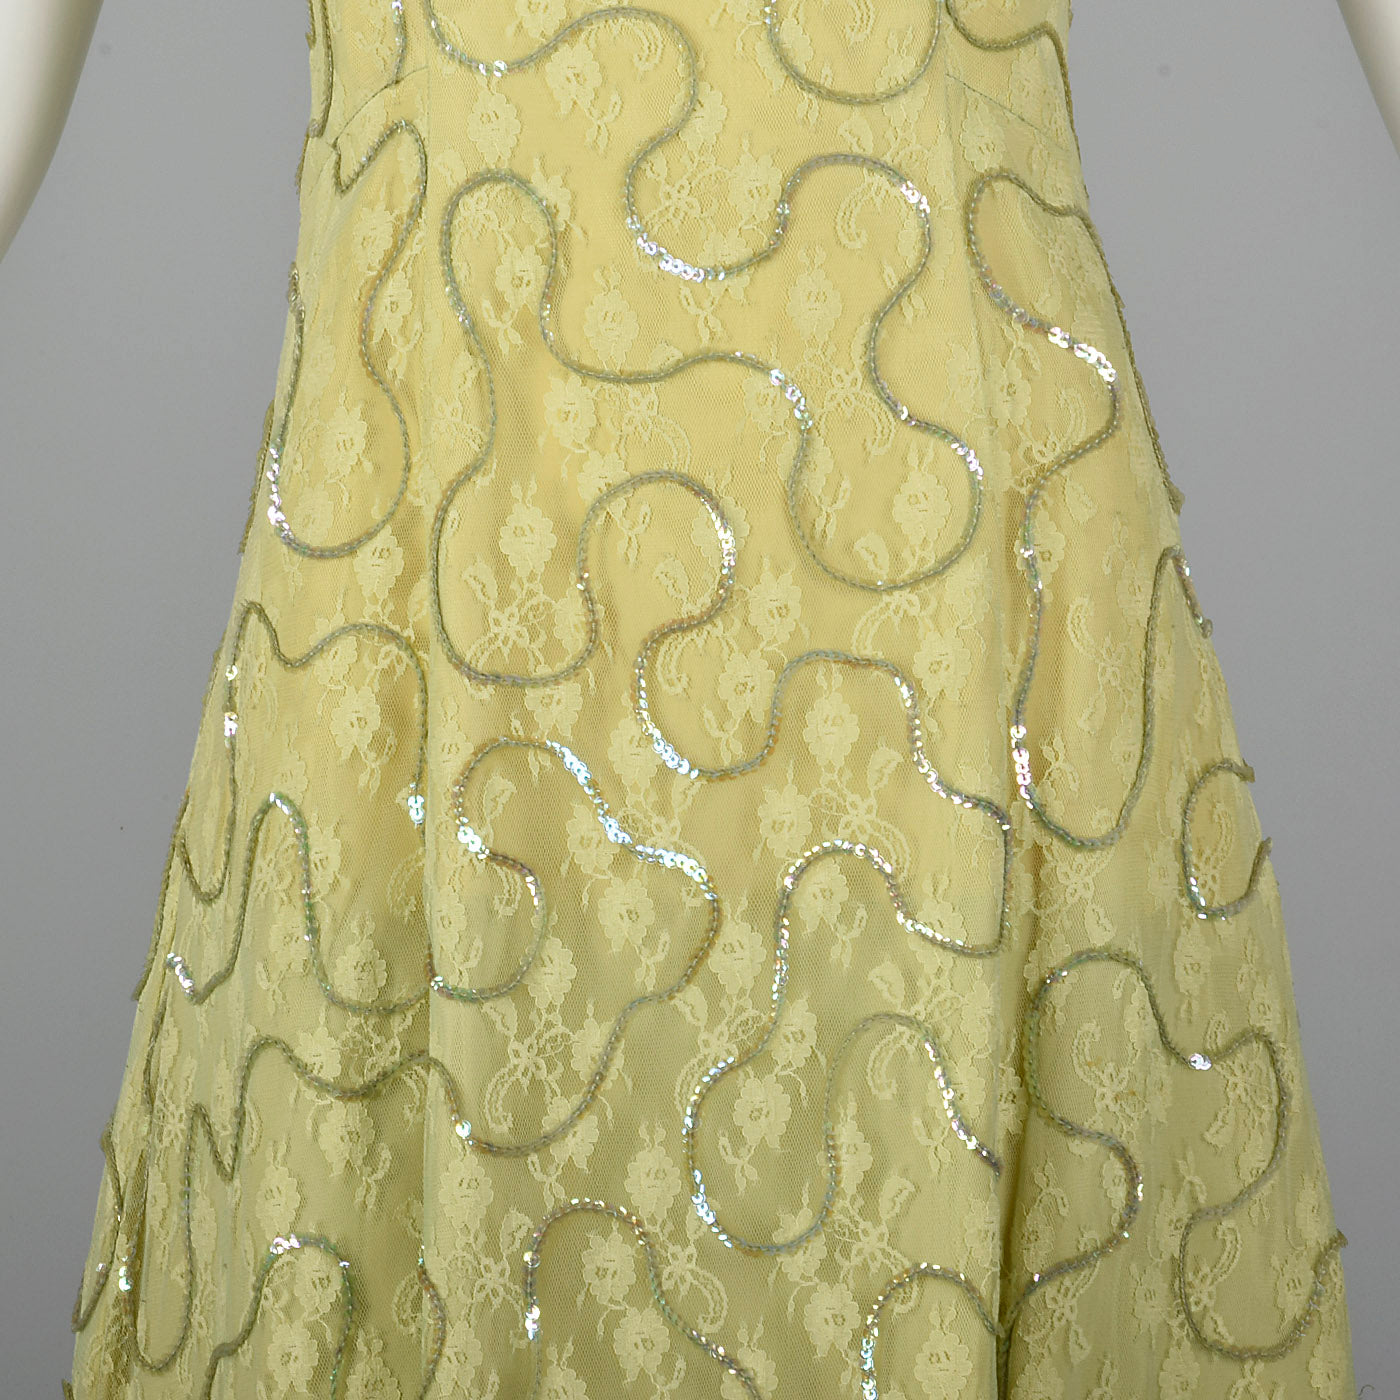 1960s Green Lace Overlay Dress with Sequins